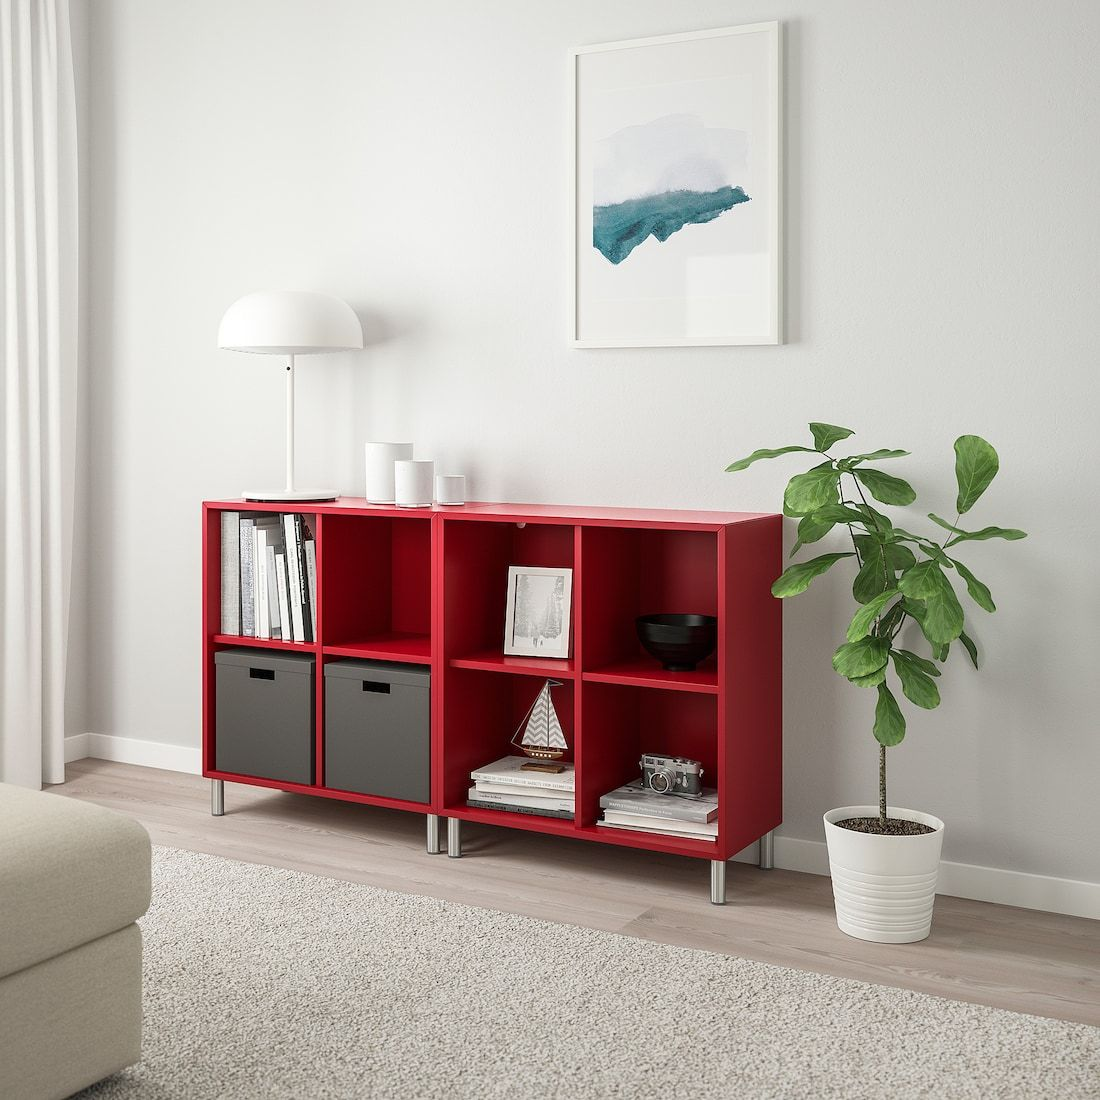 Eket Storage Combination With Legs Red 55 1 8x13 3 4x31 1 2